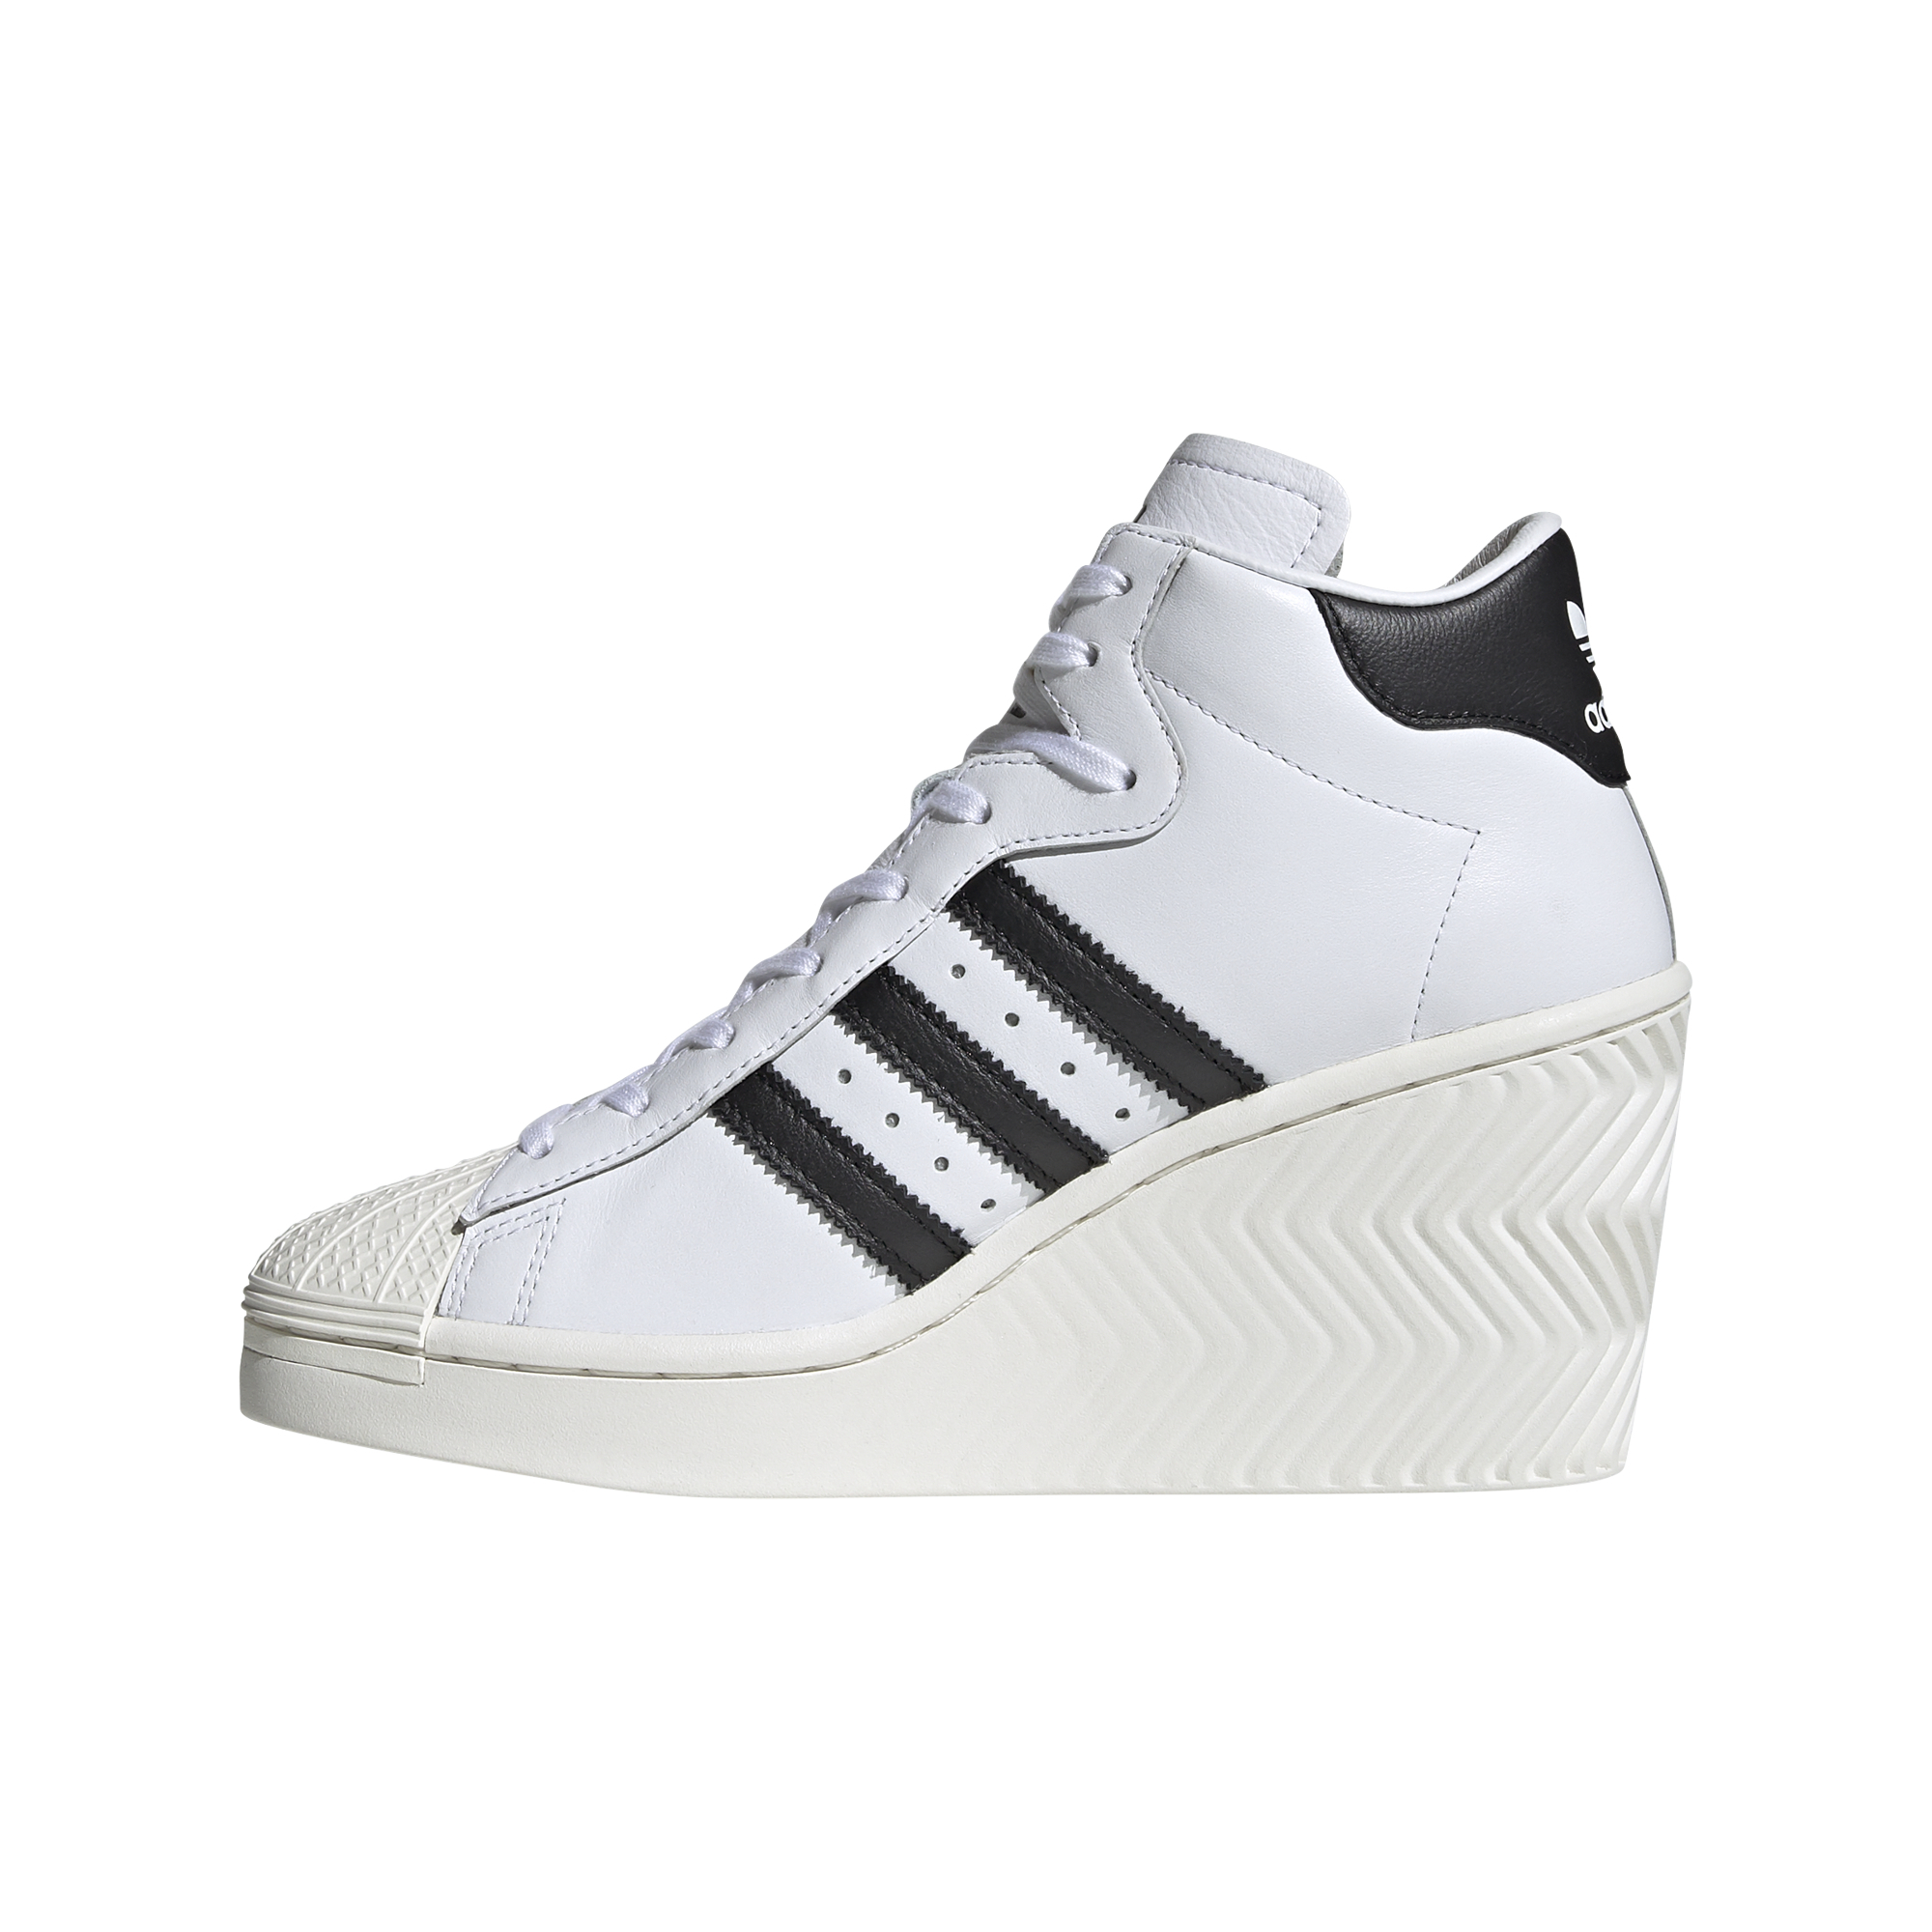 adidas Superstar Ellure W Ftw White/ Core Black/ Off White FW0102